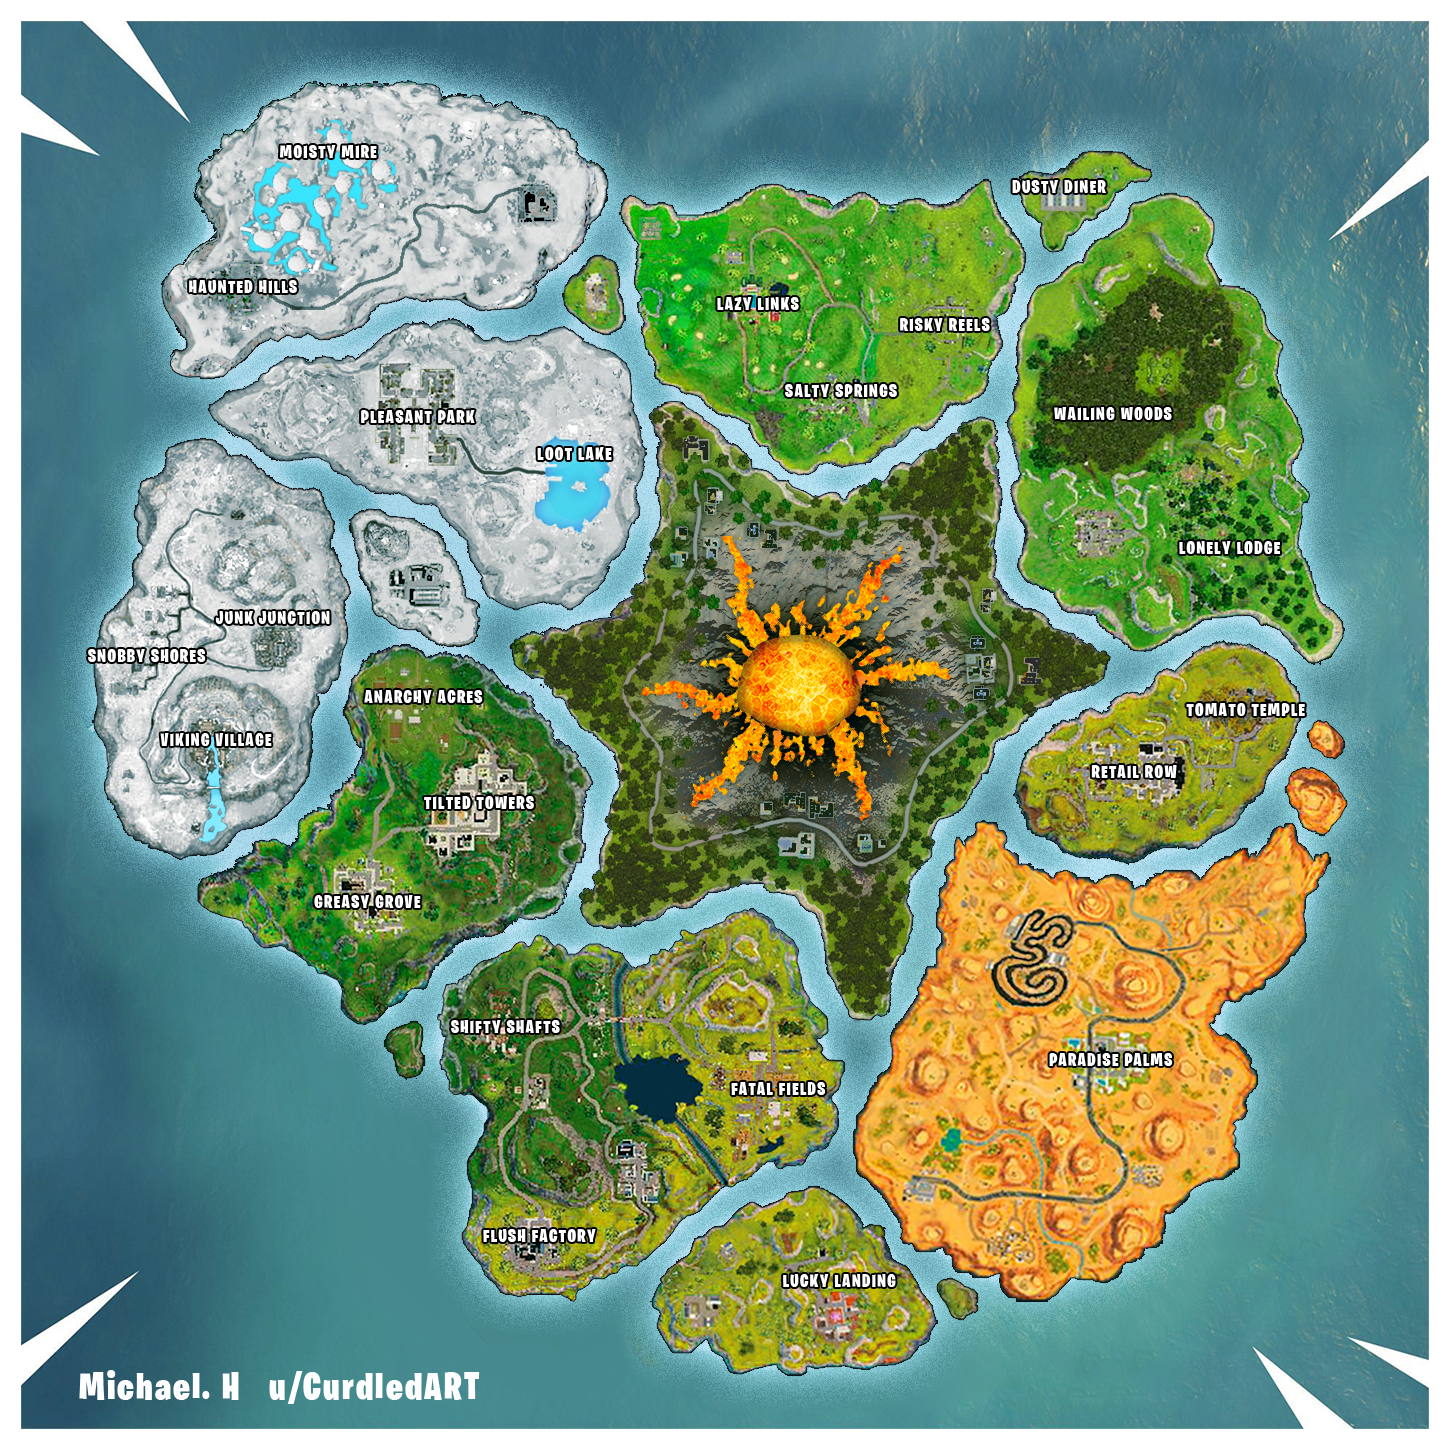 Fortnite map concept